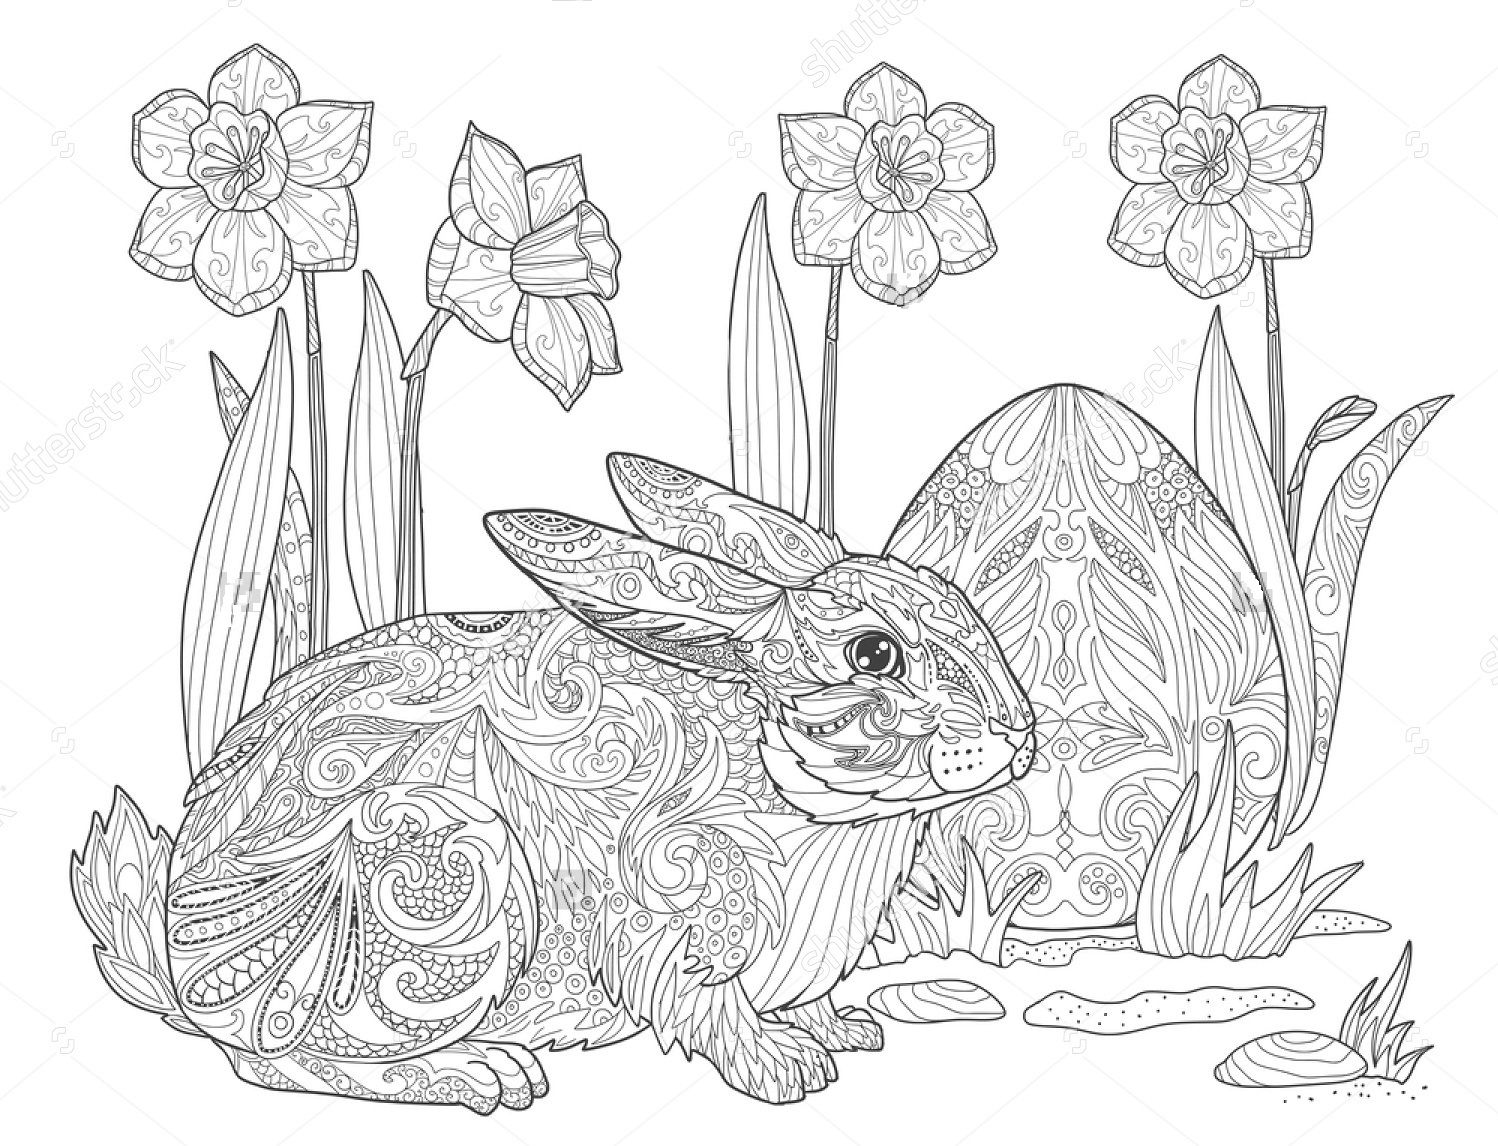 Pin By Sharon On Easter Easter Coloring Book Easter Coloring Pages Coloring Pages